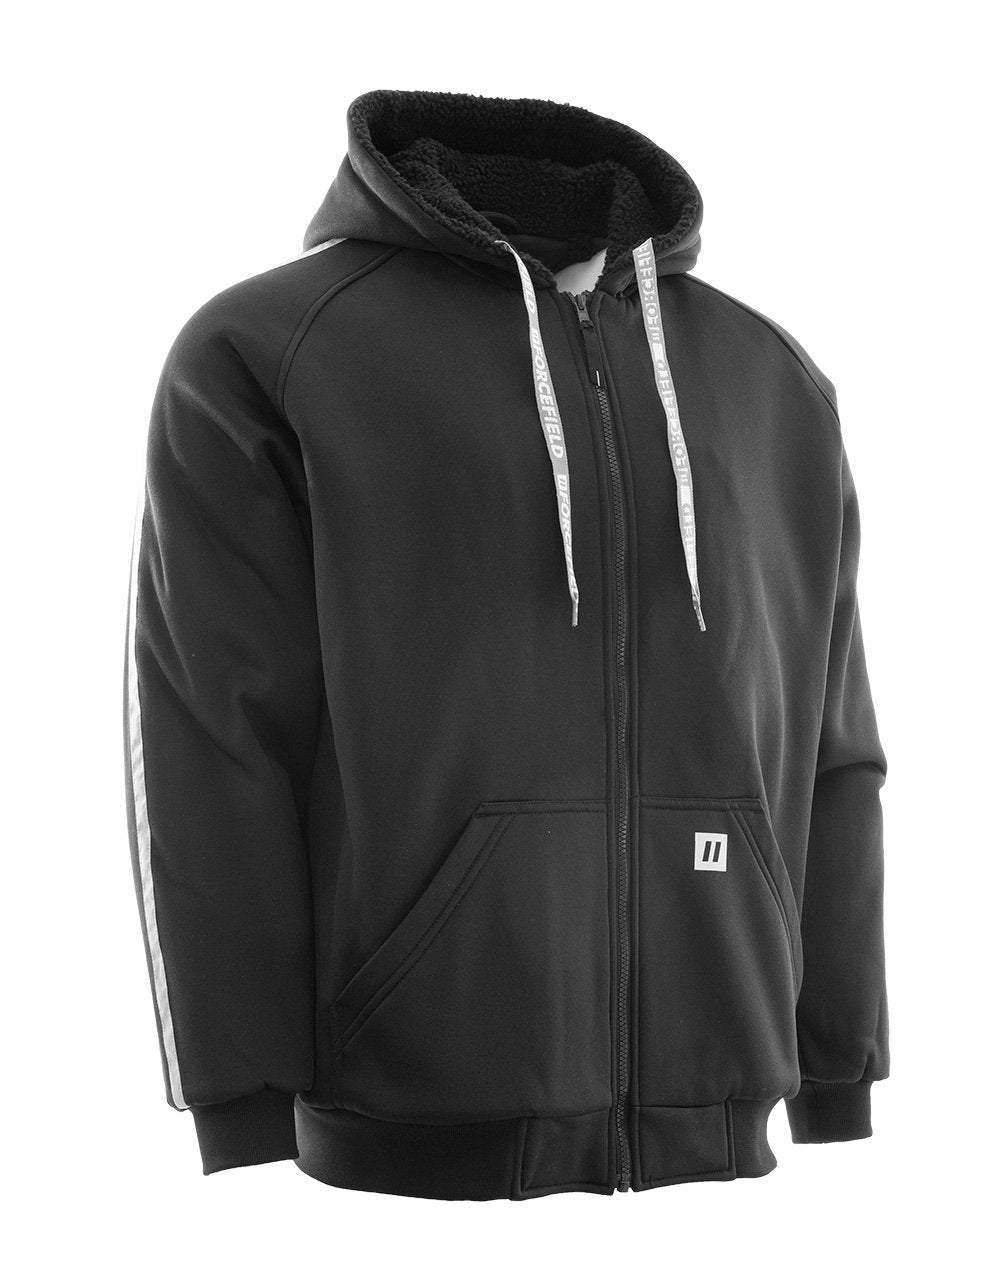 Sherpa Lined Hoodie with Reflective Stripe